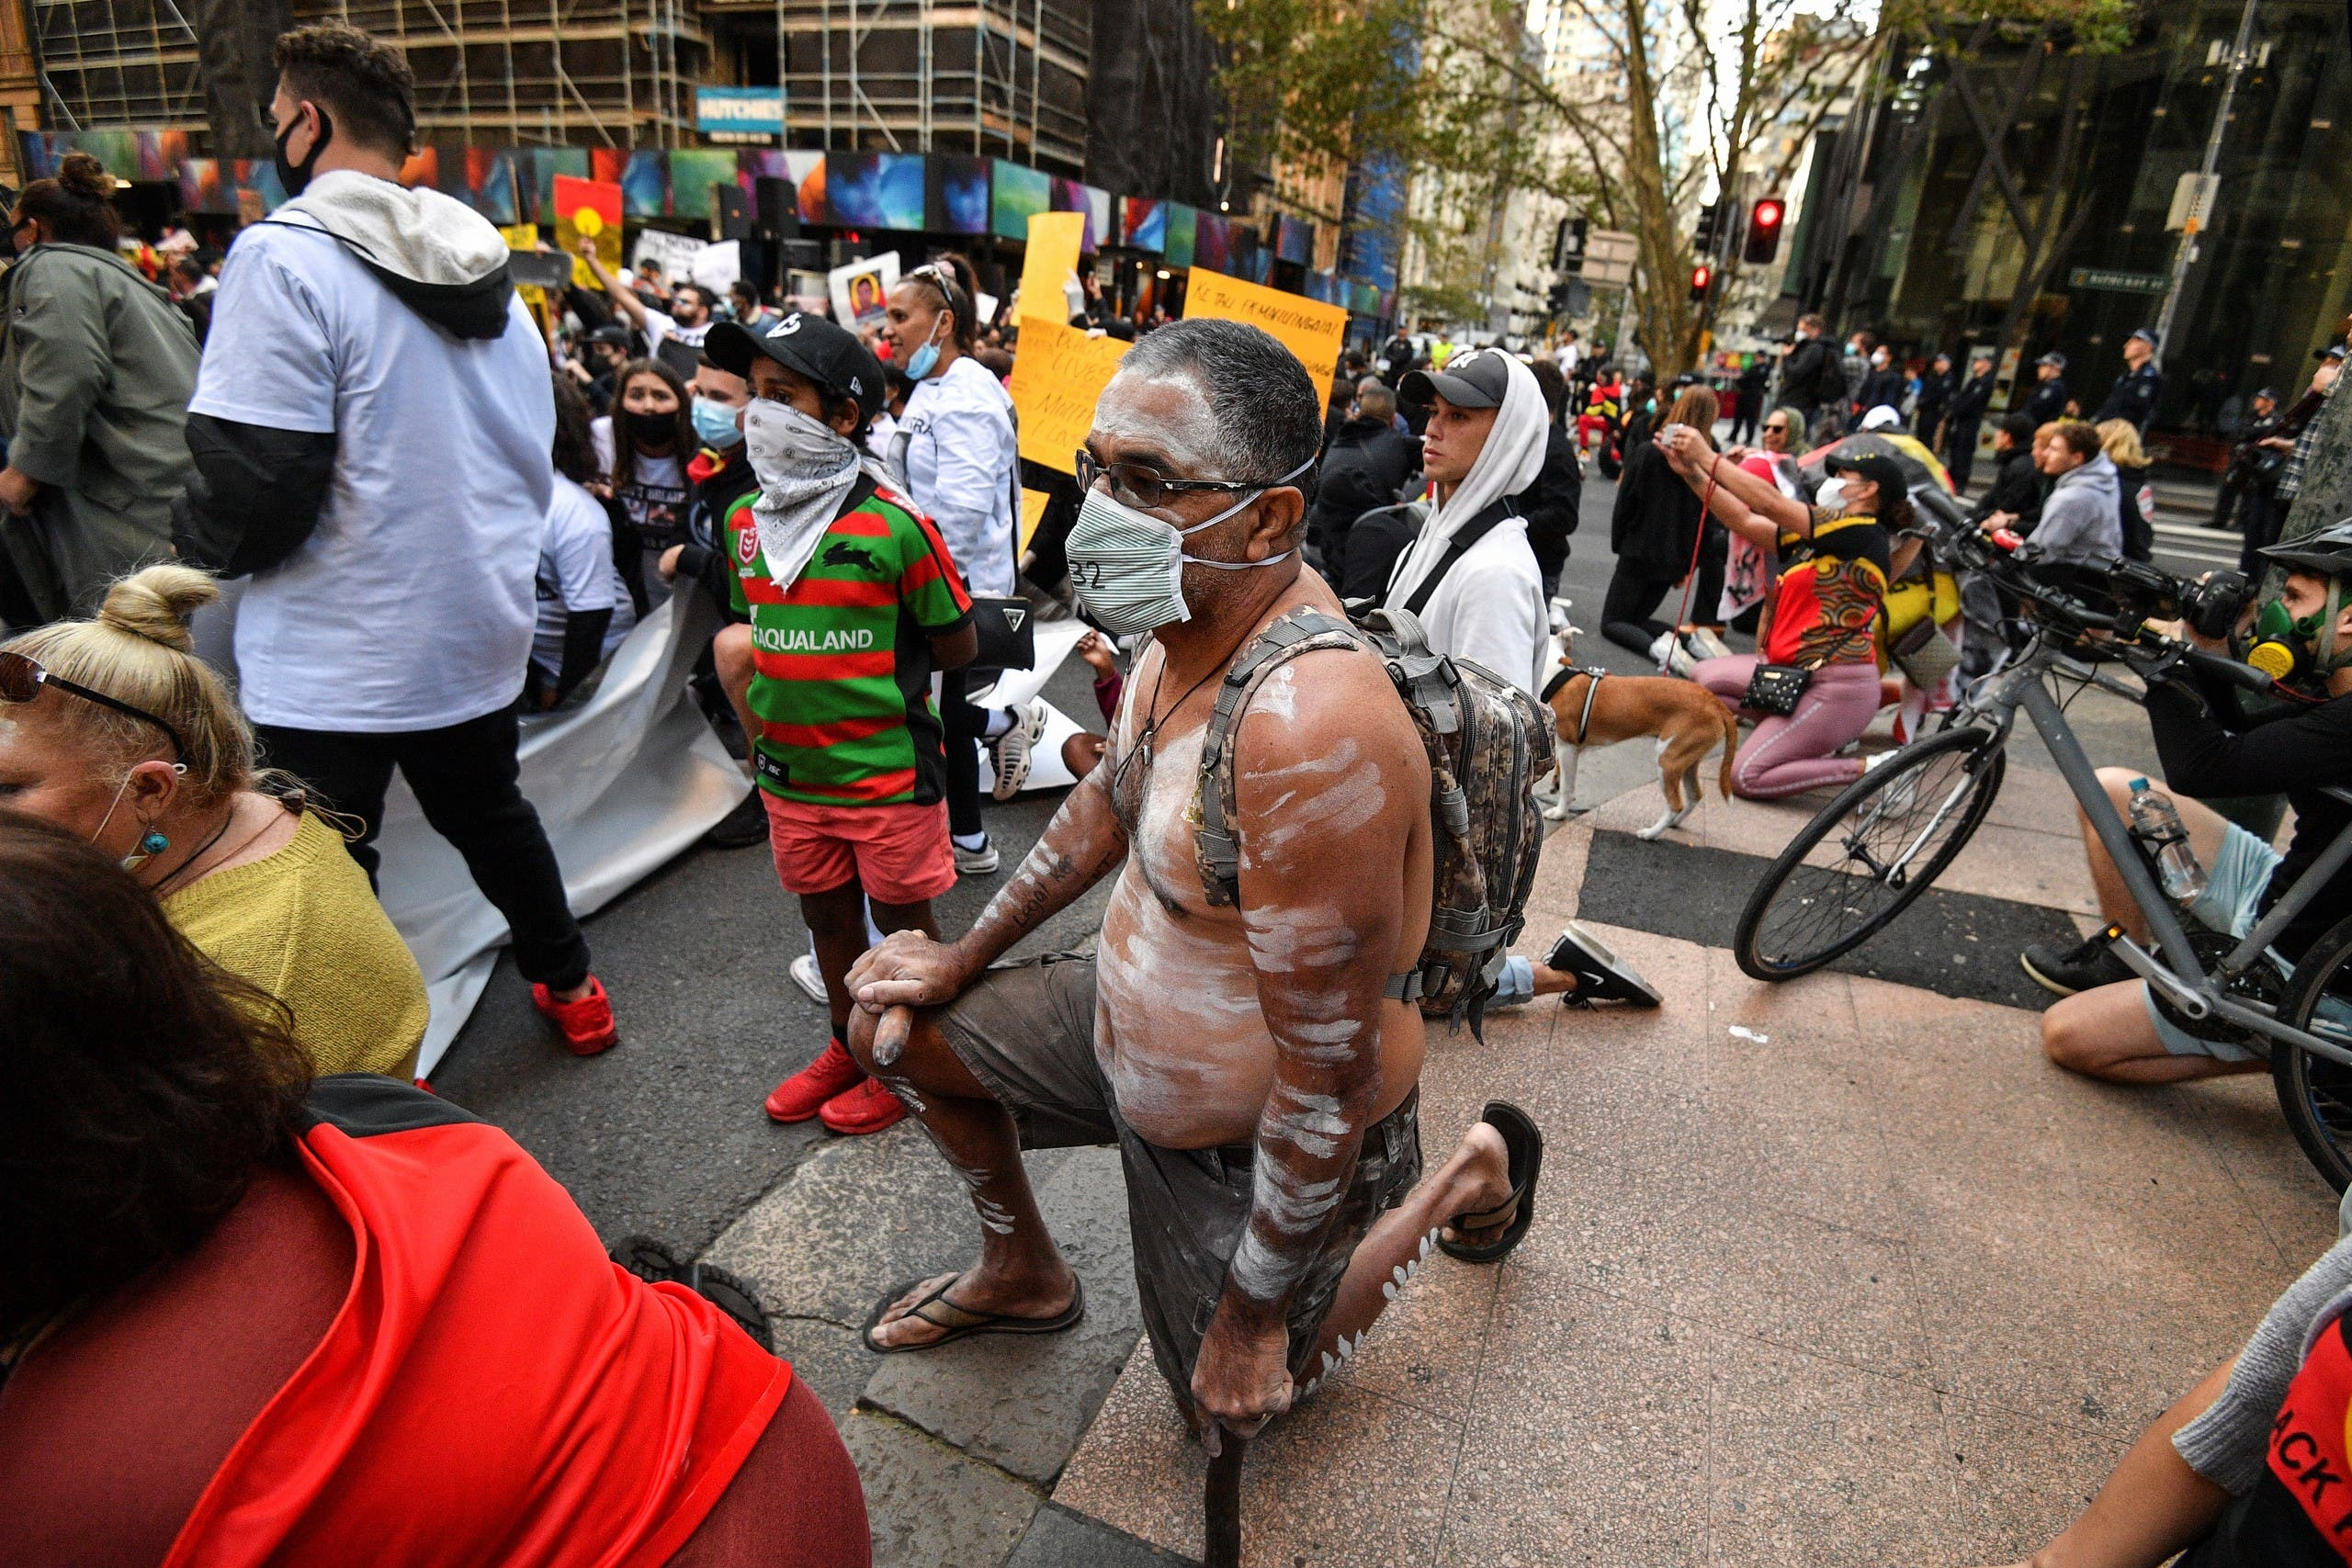 A man in aboriginal dress takes the knee in solidarity with Black Lives Matter protests, Sydney, Australia, June 6, 2020. (AFP)